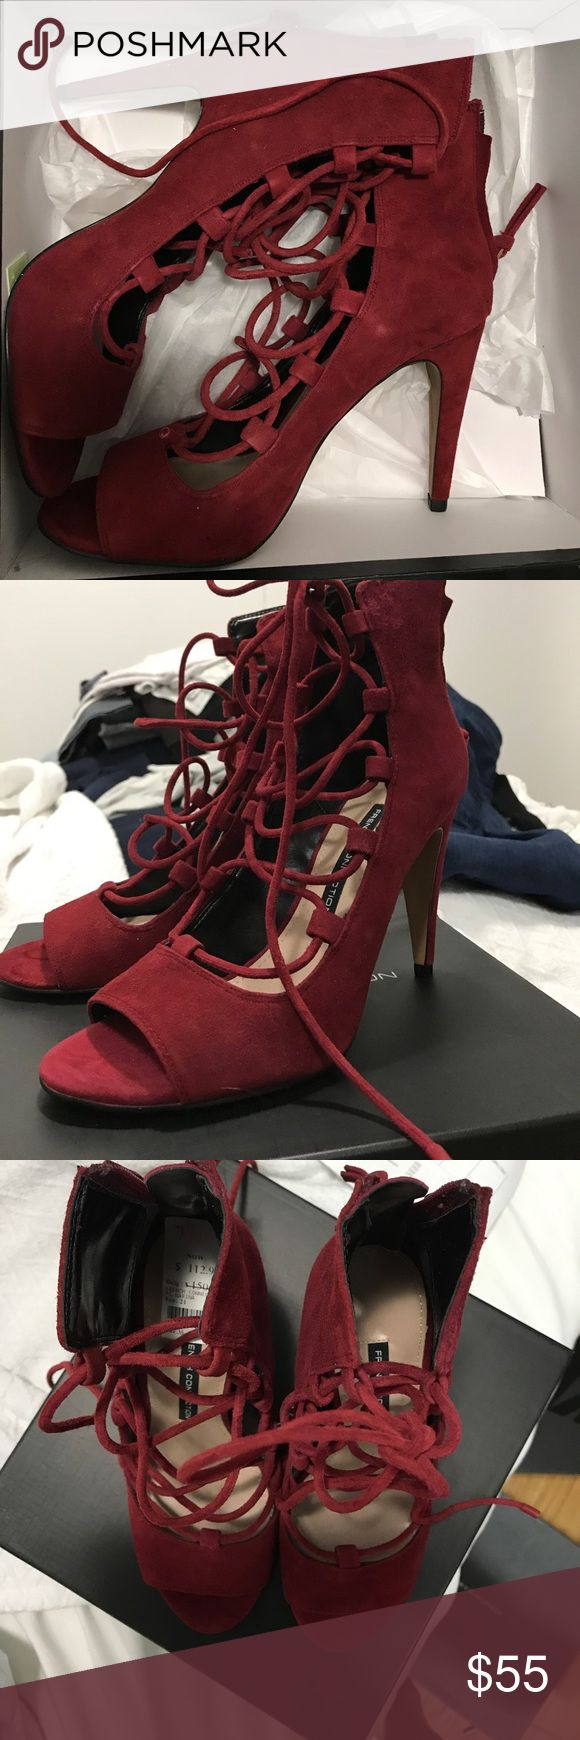 """French Connection Narina Red Suede Heels Never worn! New with tags and comes in box. Bought on sale from Bloomingdales for $113. Beautiful """"runway red"""" color. Suede. Pristine condition. Runs true to size. French Connection Shoes Heels"""